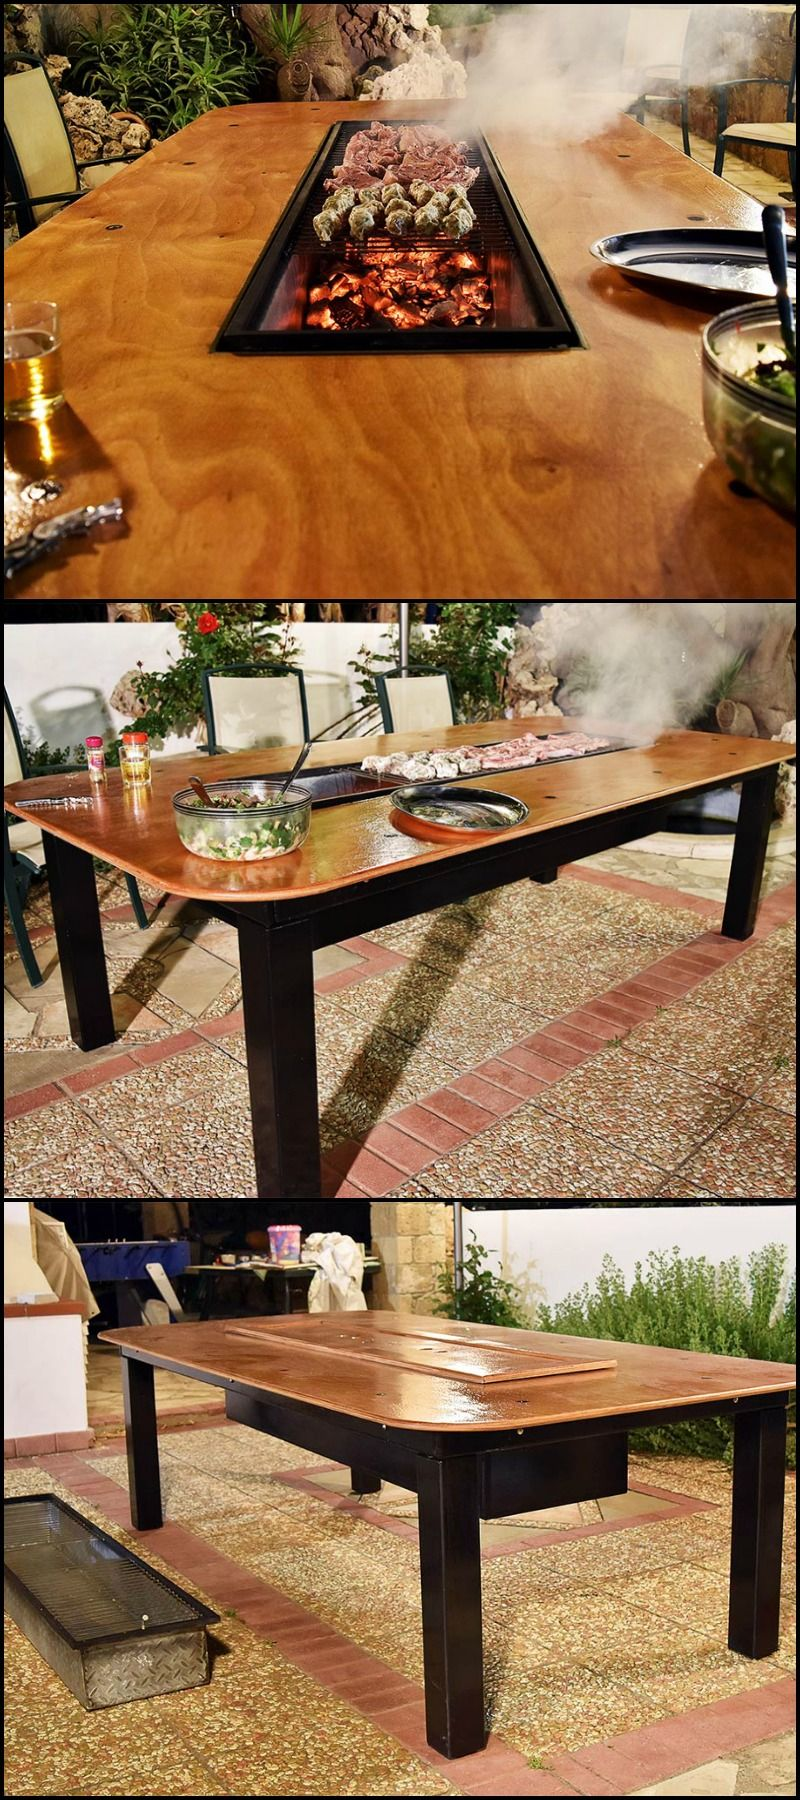 Pin By Andrea Masse On Outdoor Life Diy Grill Bbq Table